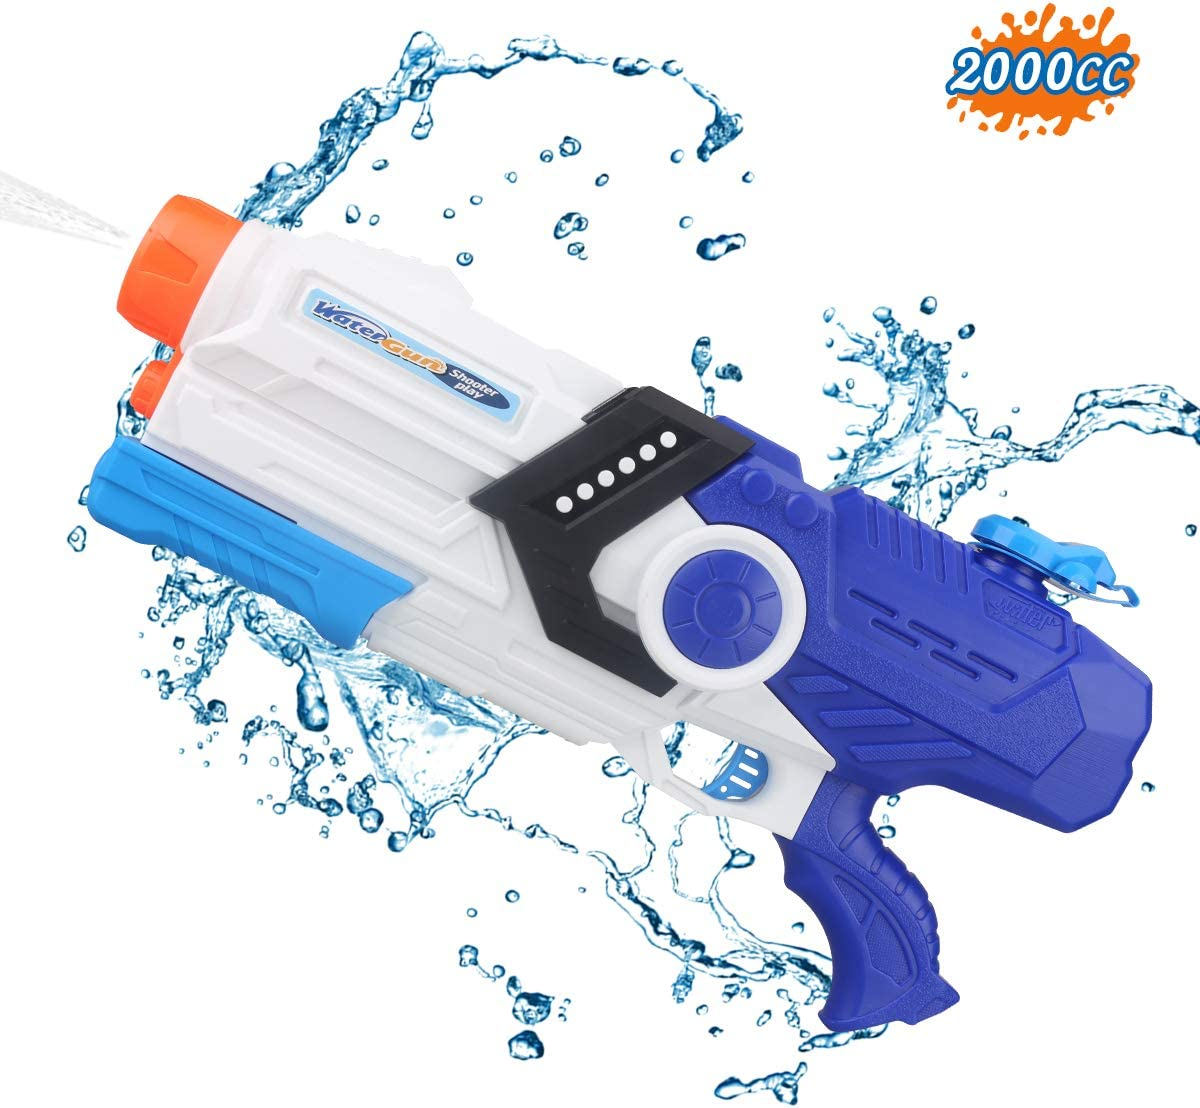 Water Gun,Squirt Guns High Capacity 2000CC Soaker Blaster 35 FT Long Range Water Toys for Kids and Adults Water Guns for Summer Outdoor Swimming Fight Game